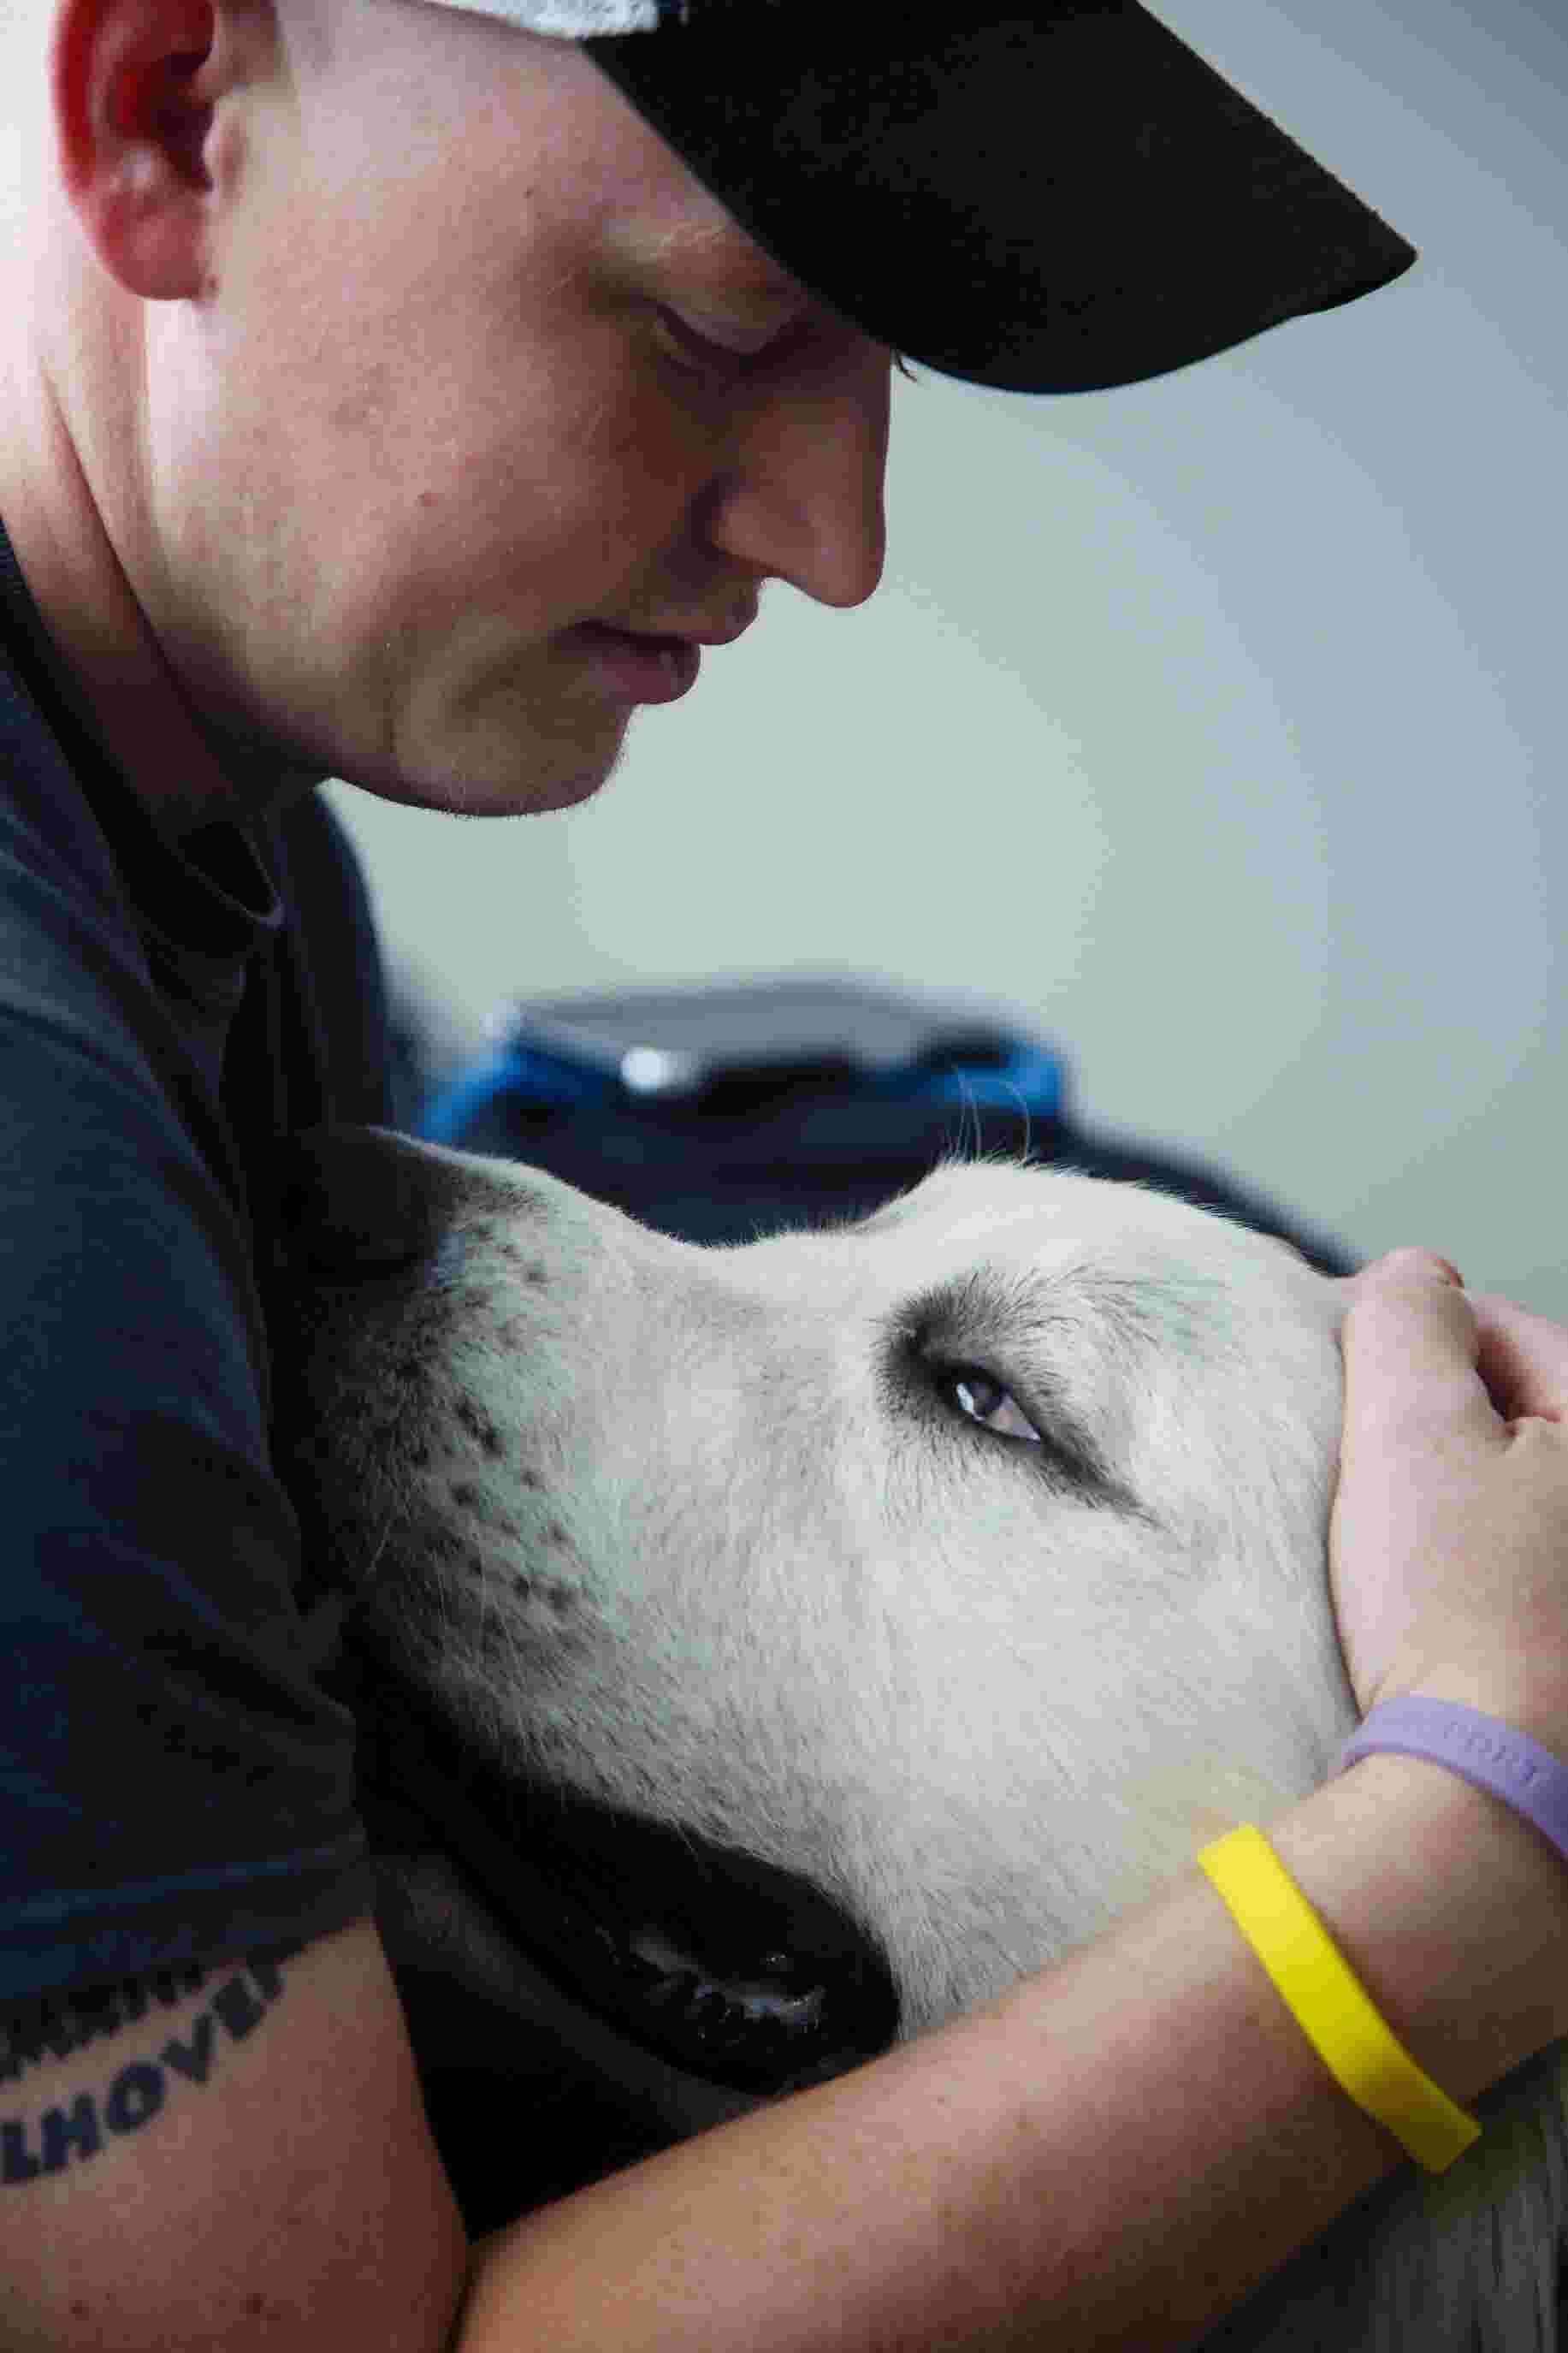 Rare cancer pulls Iowa man down, but his dog lifts him back up